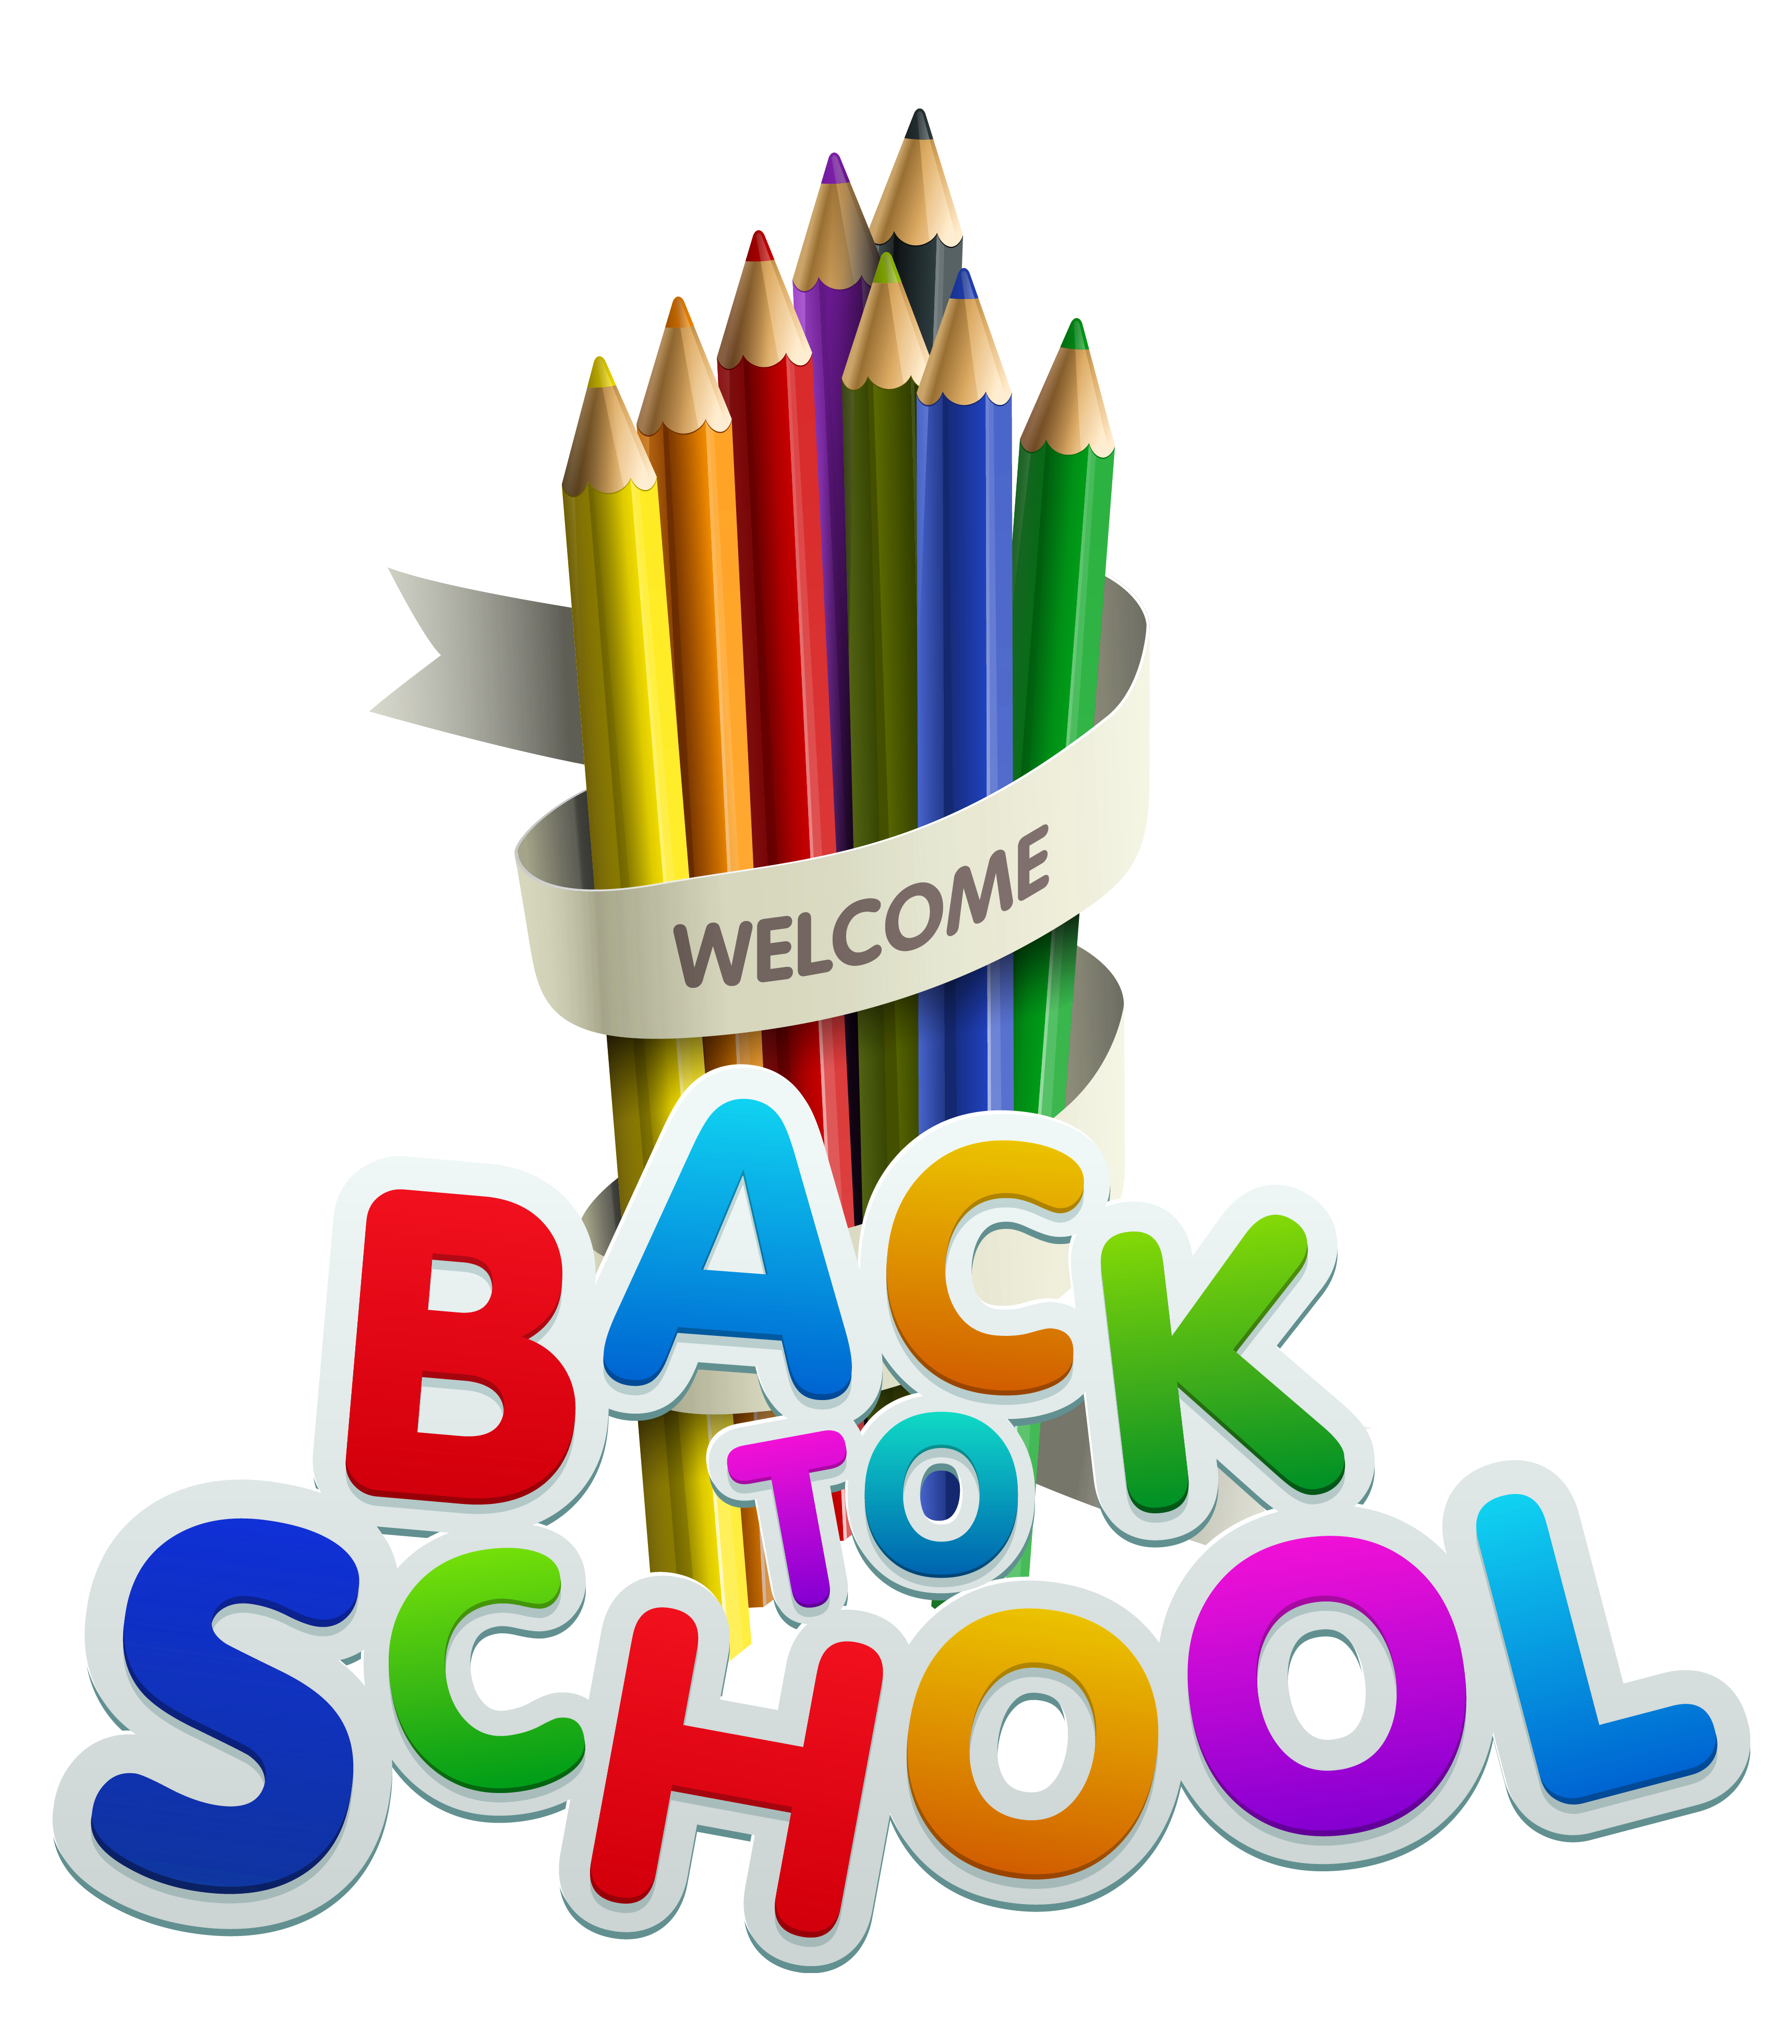 Back To School Owl Clipart Free Clipart Images Clipartcow Back To School Images Welcome Back To School School Clipart